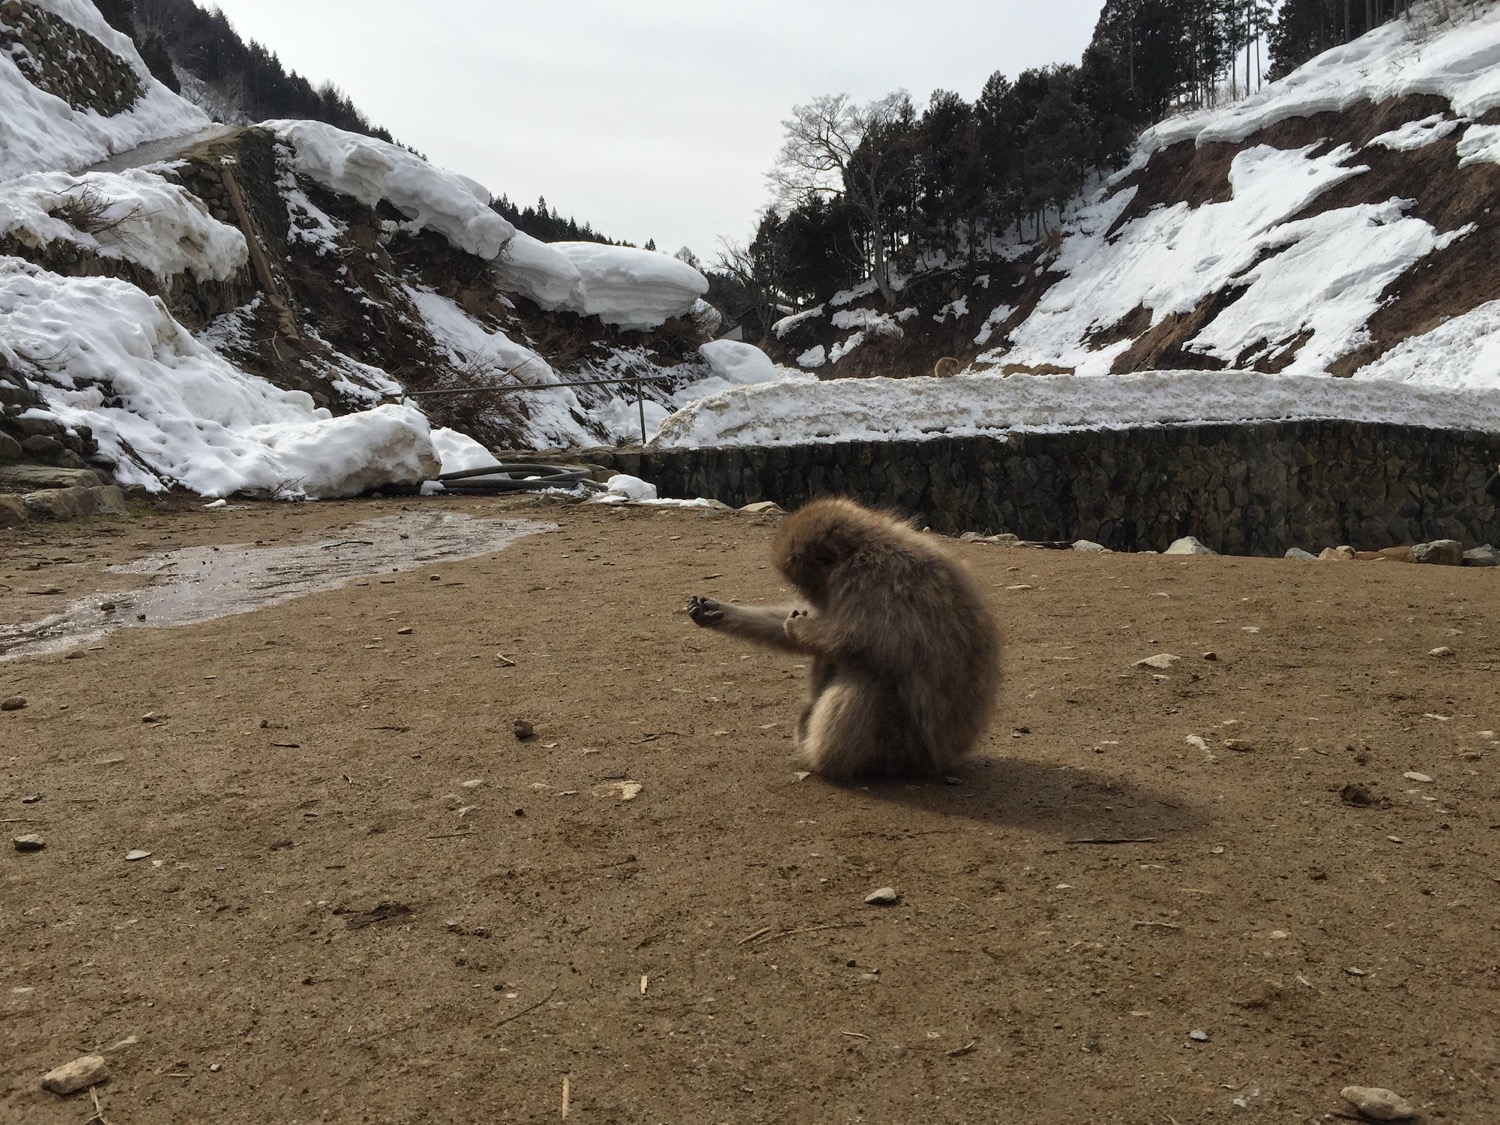 Snow monkey at the onsen